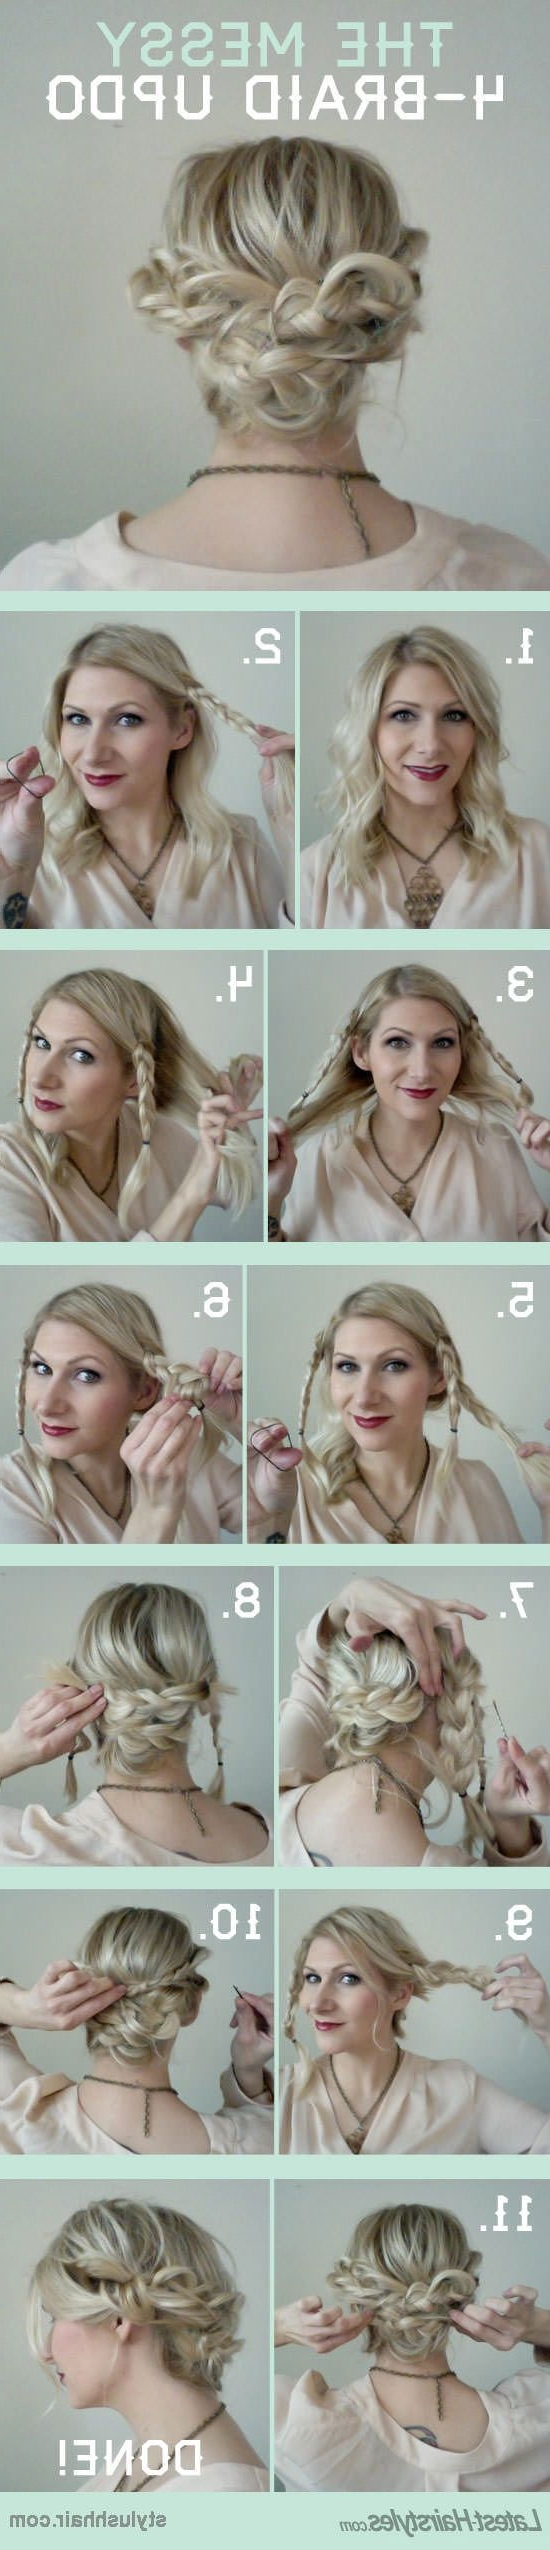 Well Liked Simple Wedding Hairstyles For Medium Length Hair With 15 Cute And Easy Hairstyle Tutorials For Medium Length Hair – Gurl (View 15 of 15)